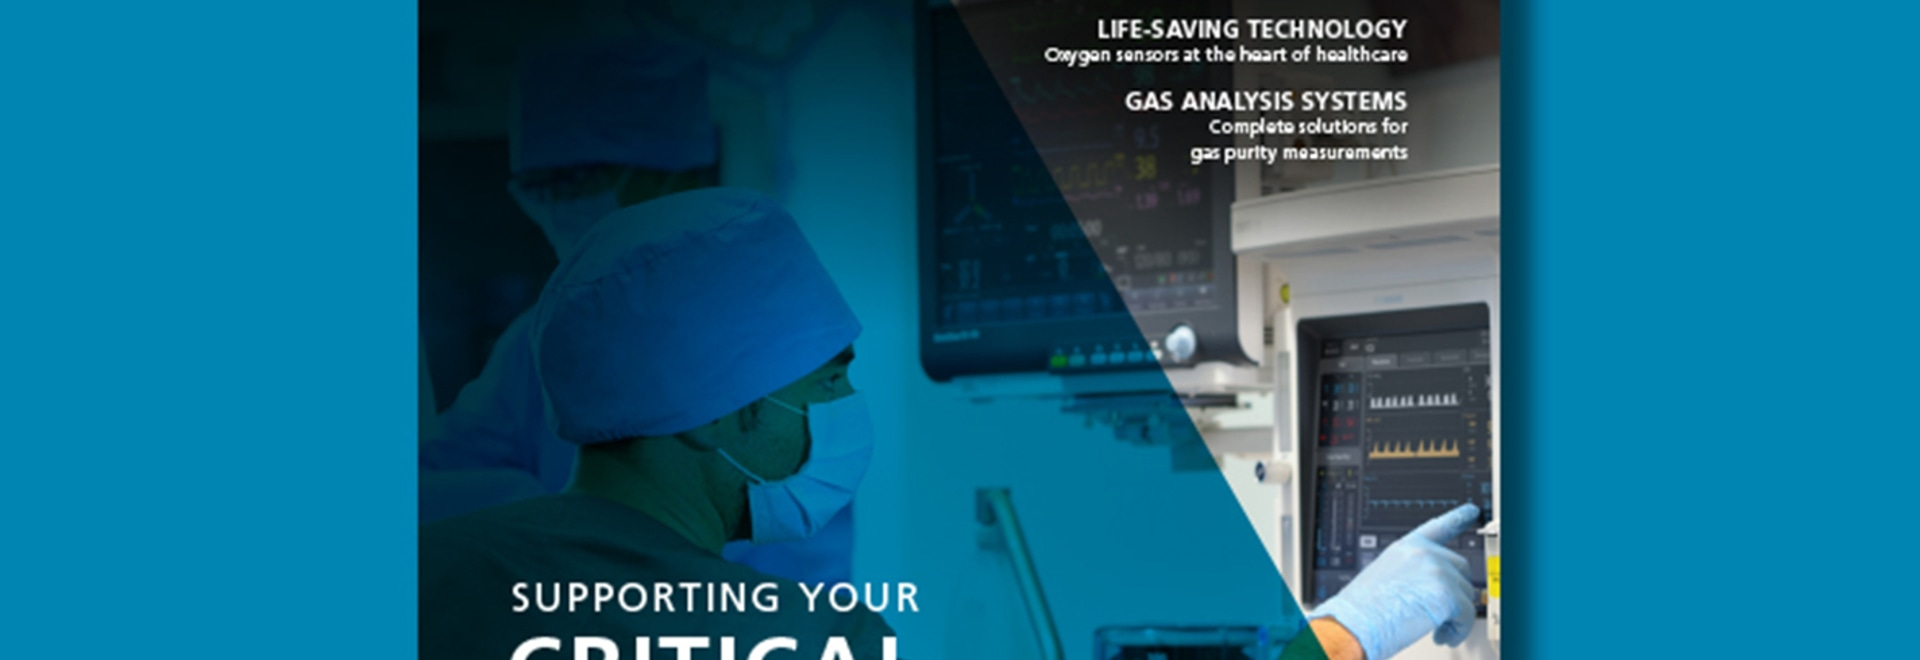 Discover our support for critical medical care with the latest Expert Solutions magazine